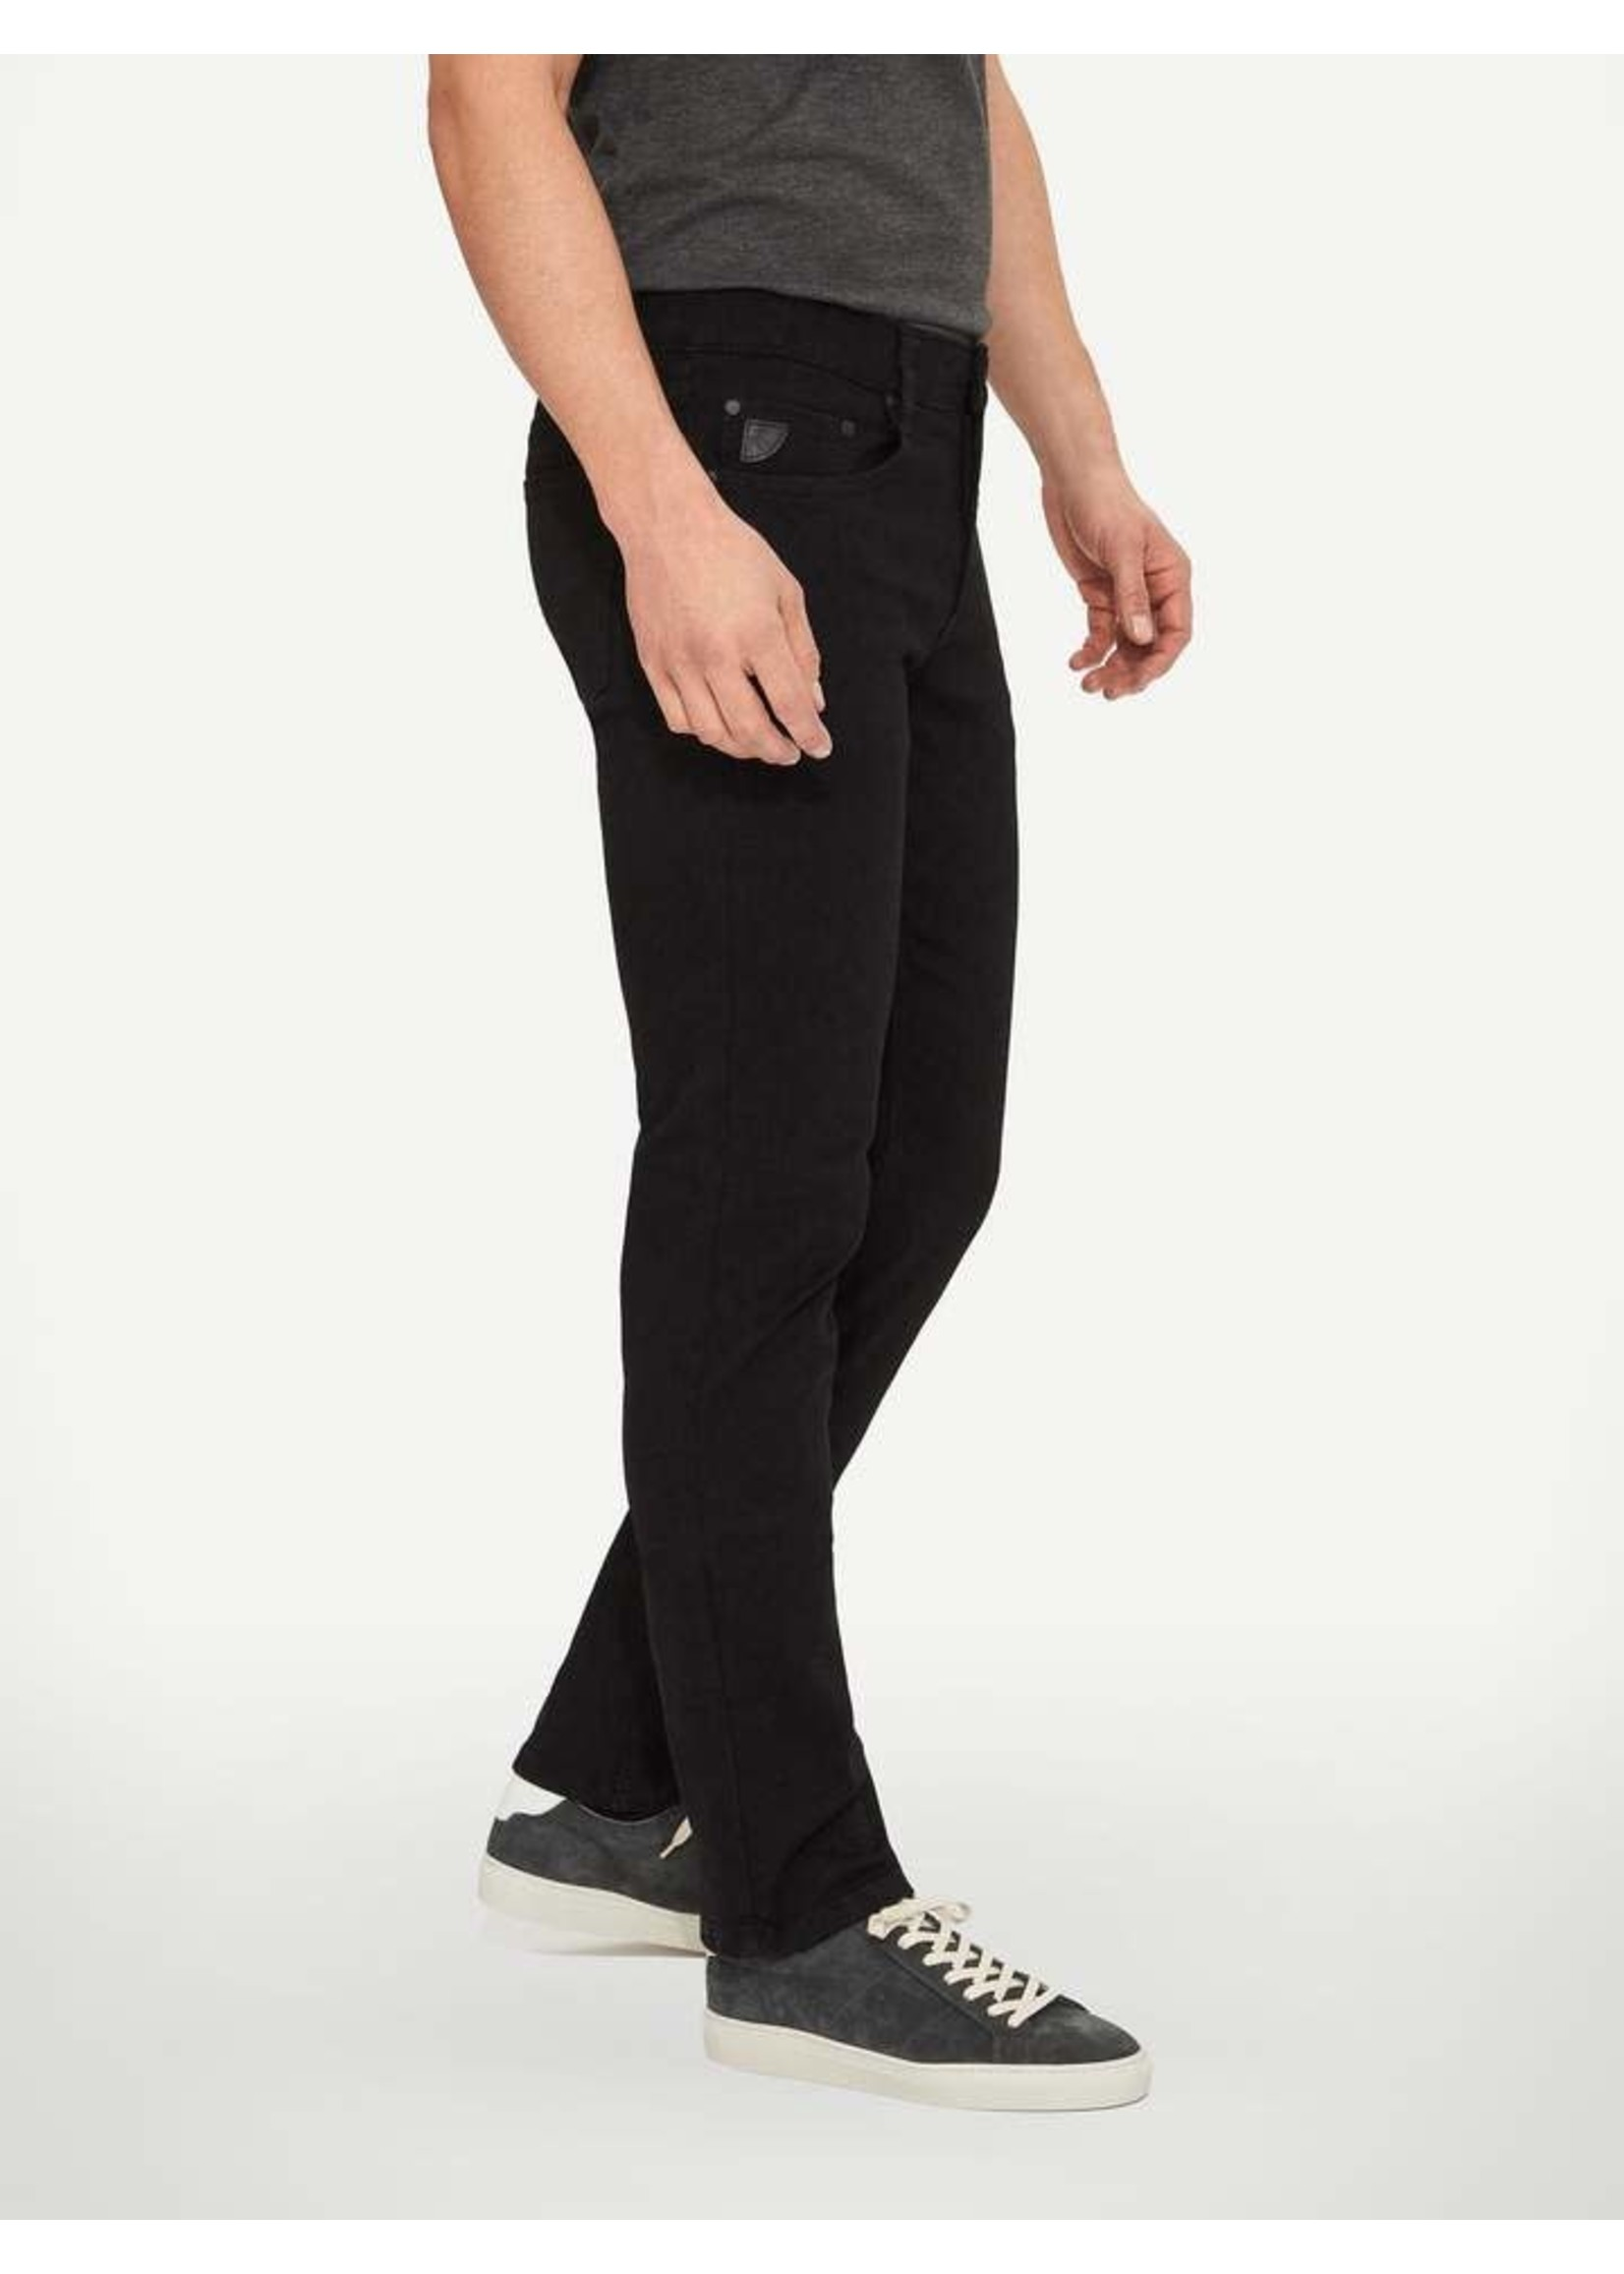 """Lois Jeans Canada The """"Peter Slim 7400"""" by Lois Jeans"""